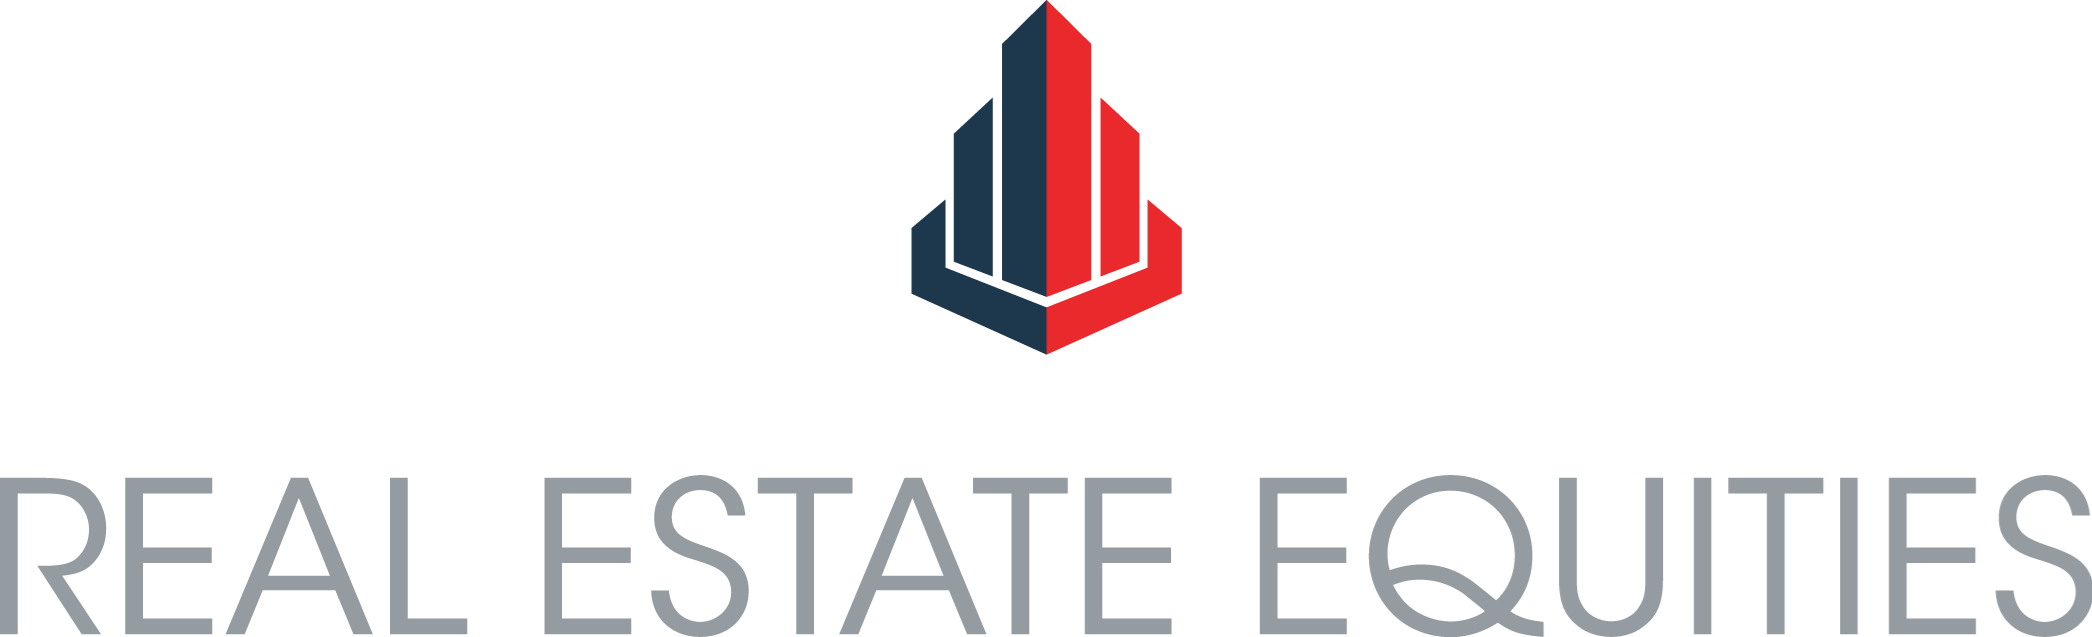 Real Estate Equities Corporate ILS Logo 4